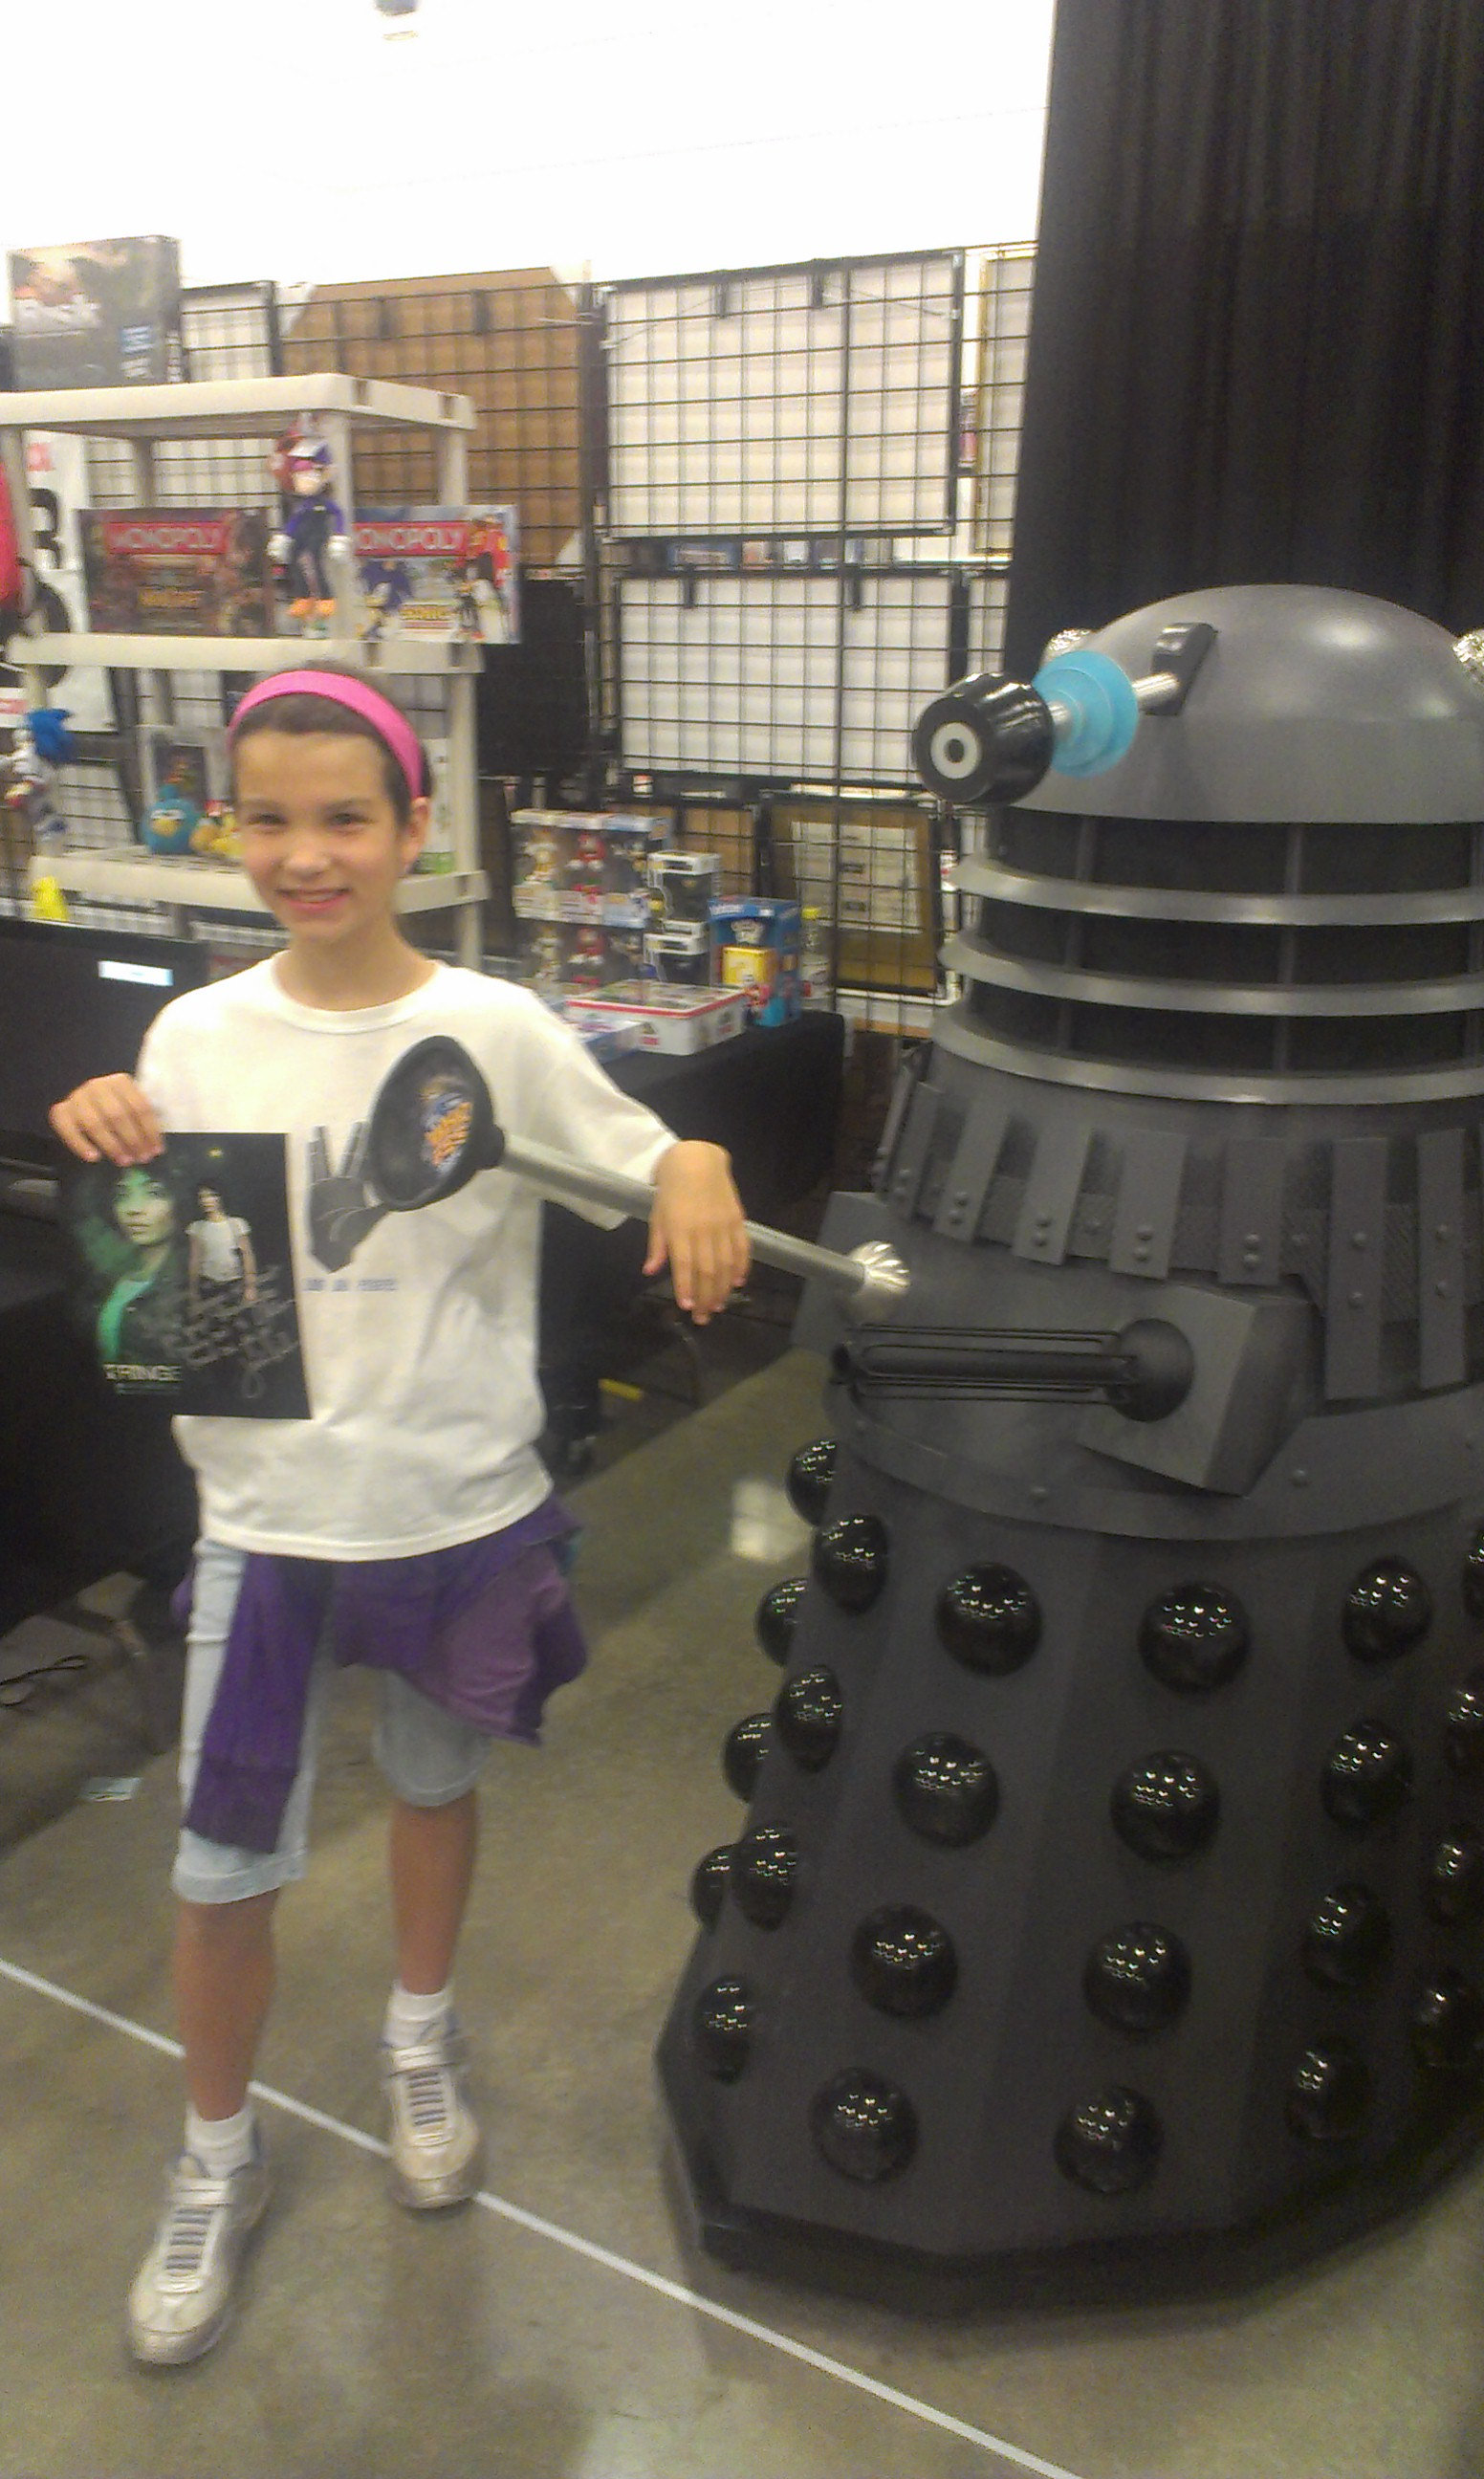 Addi with a really amazing Dalek reproduction!